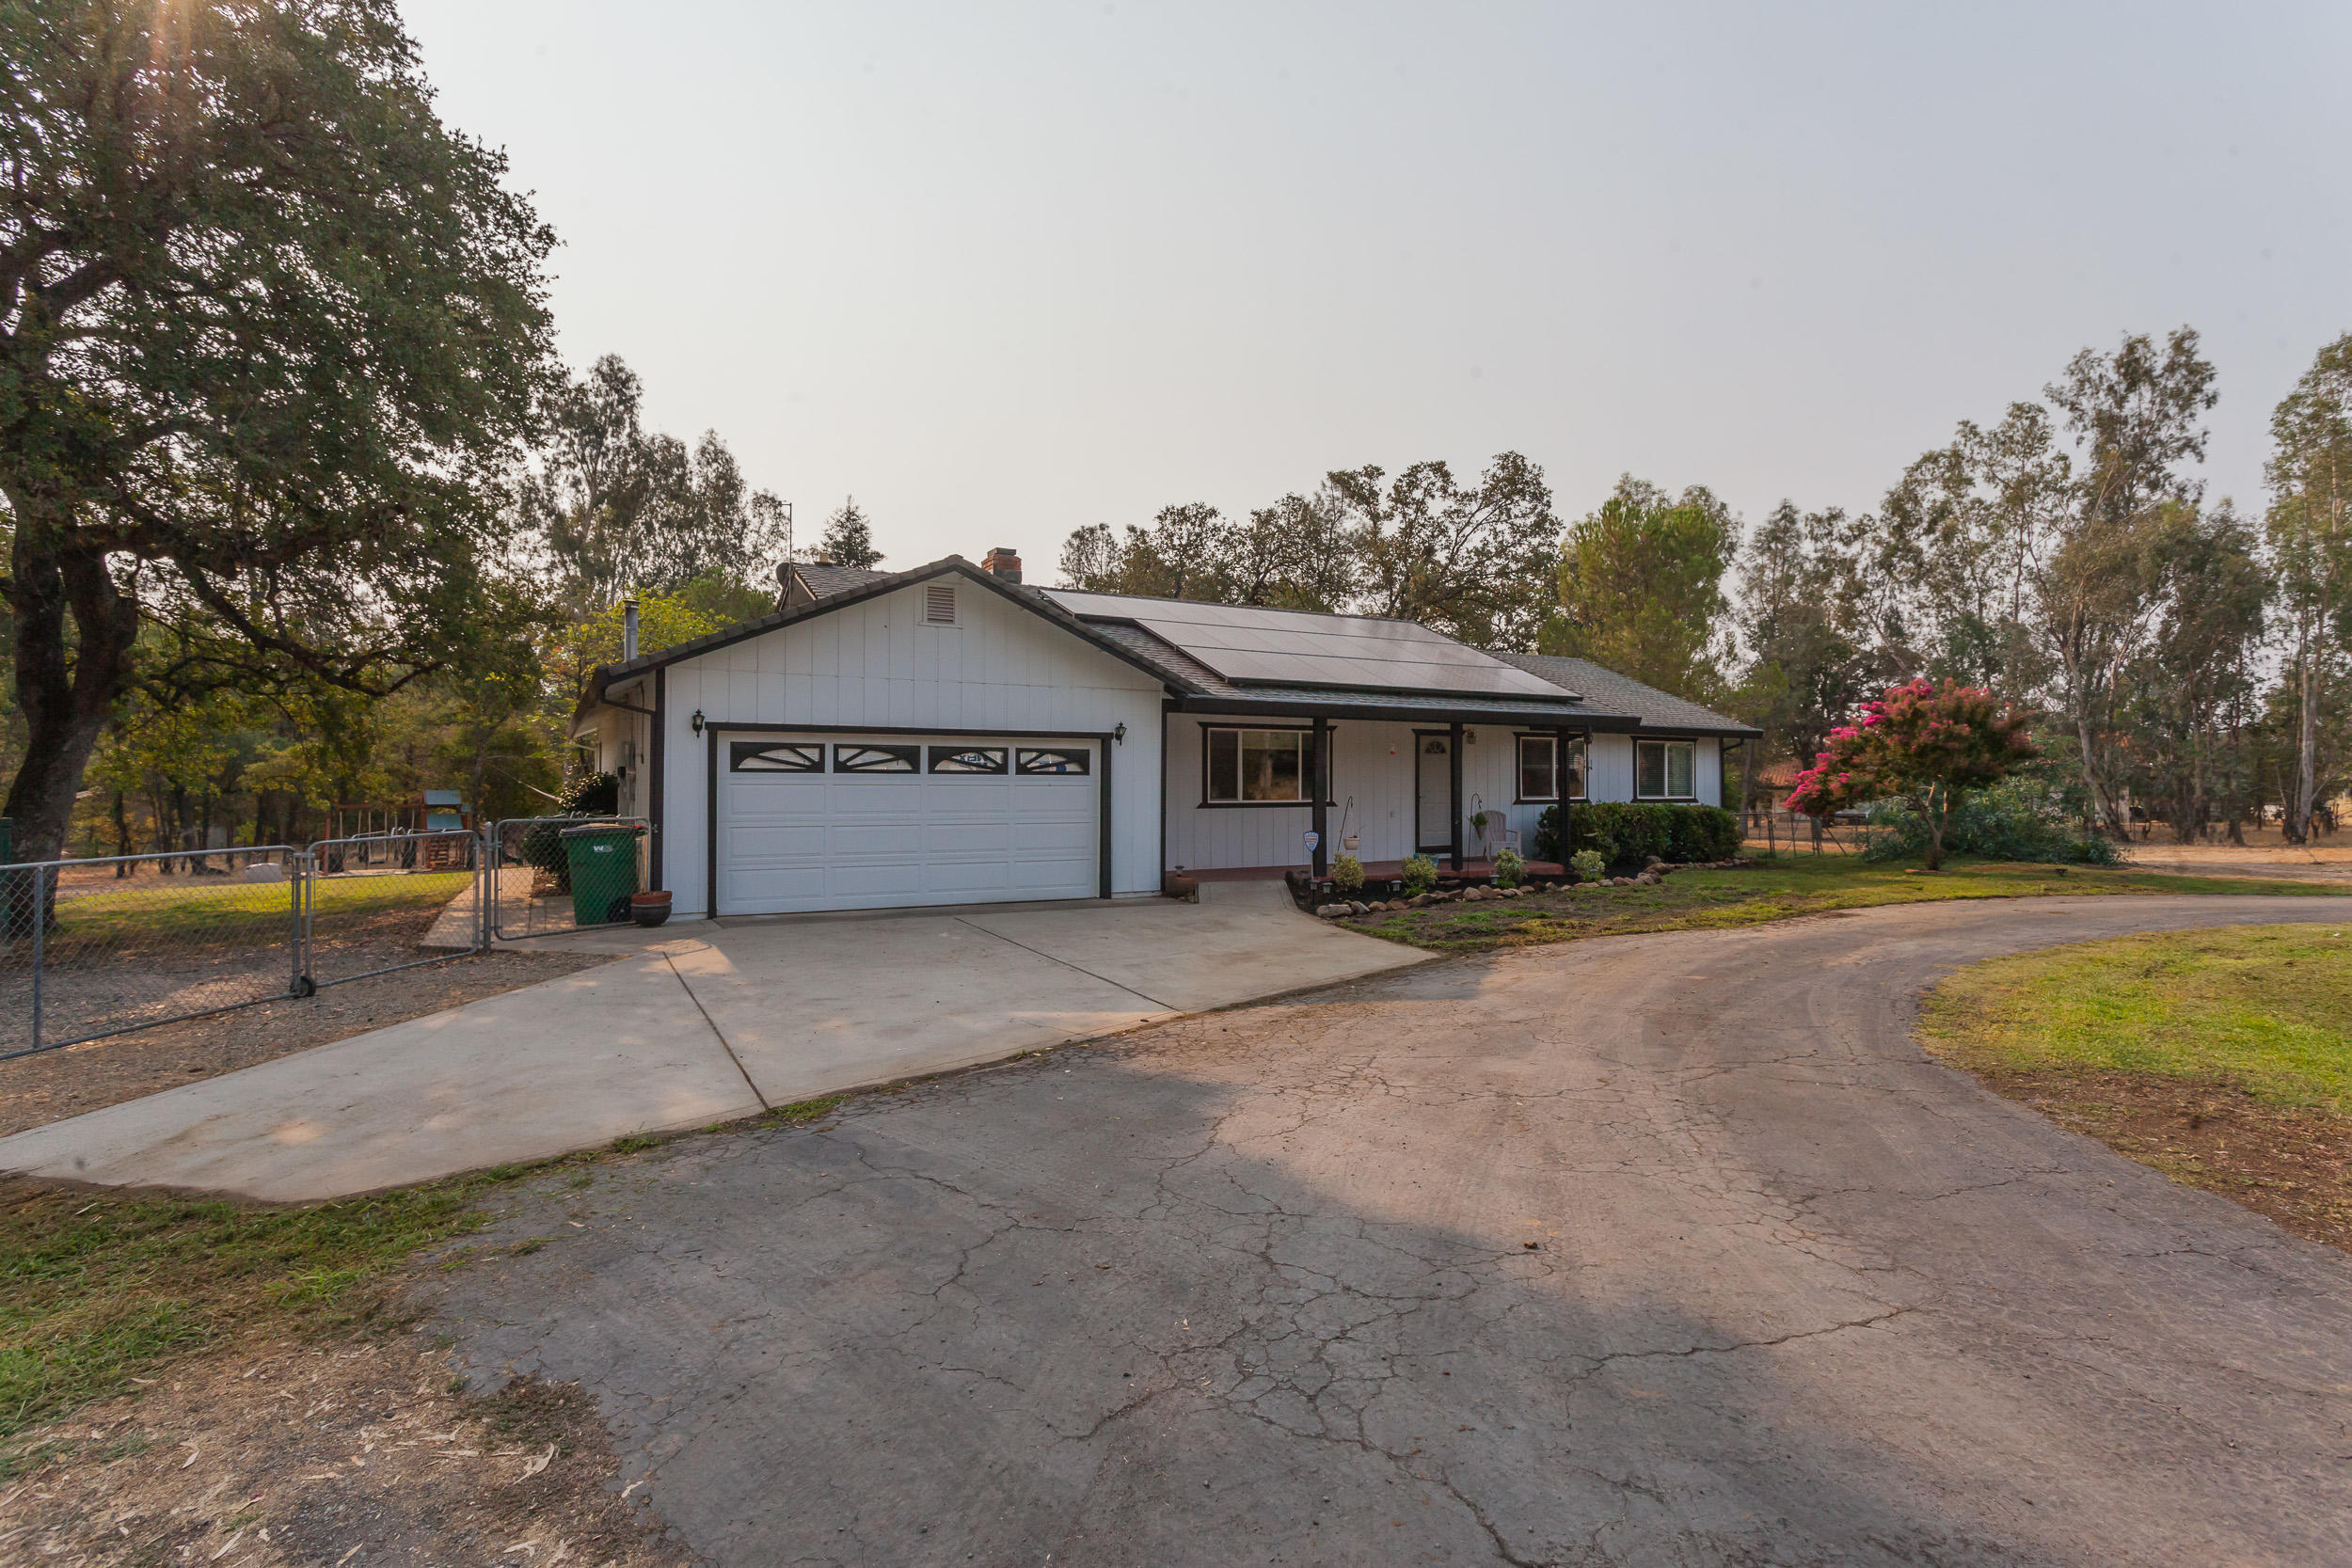 4 bed/3 bath Home in Redding for $380,000